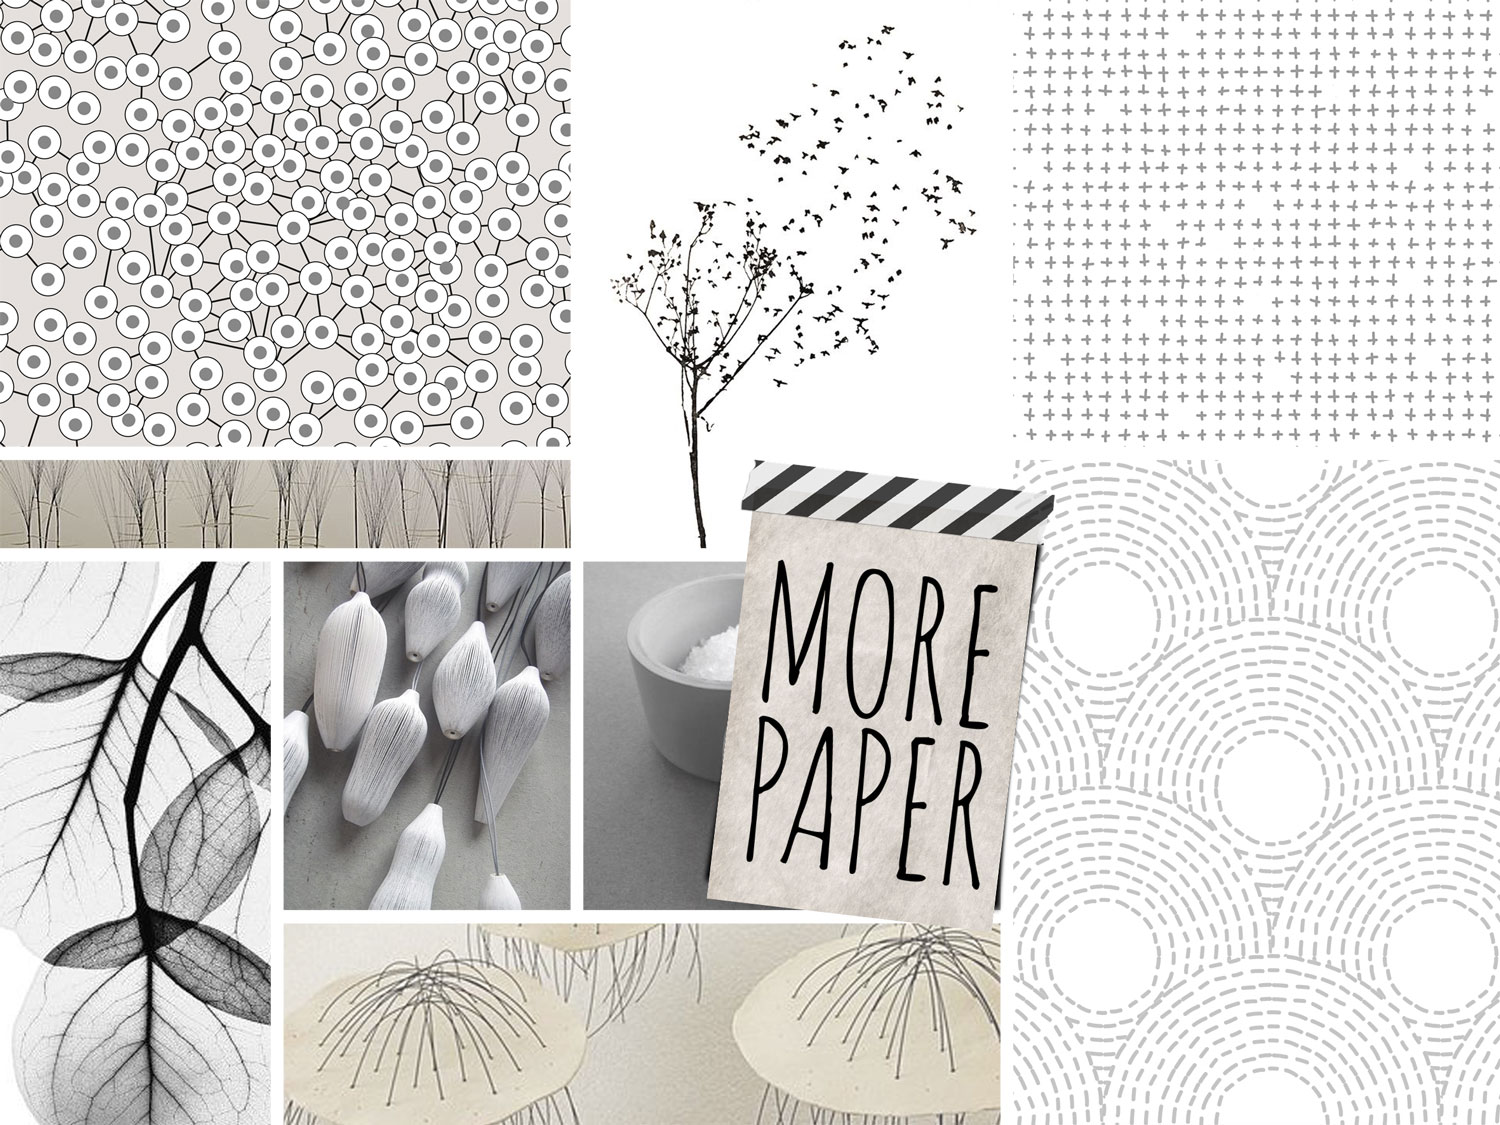 mote-paper-fabric-collection-by-zen-chic.jpg